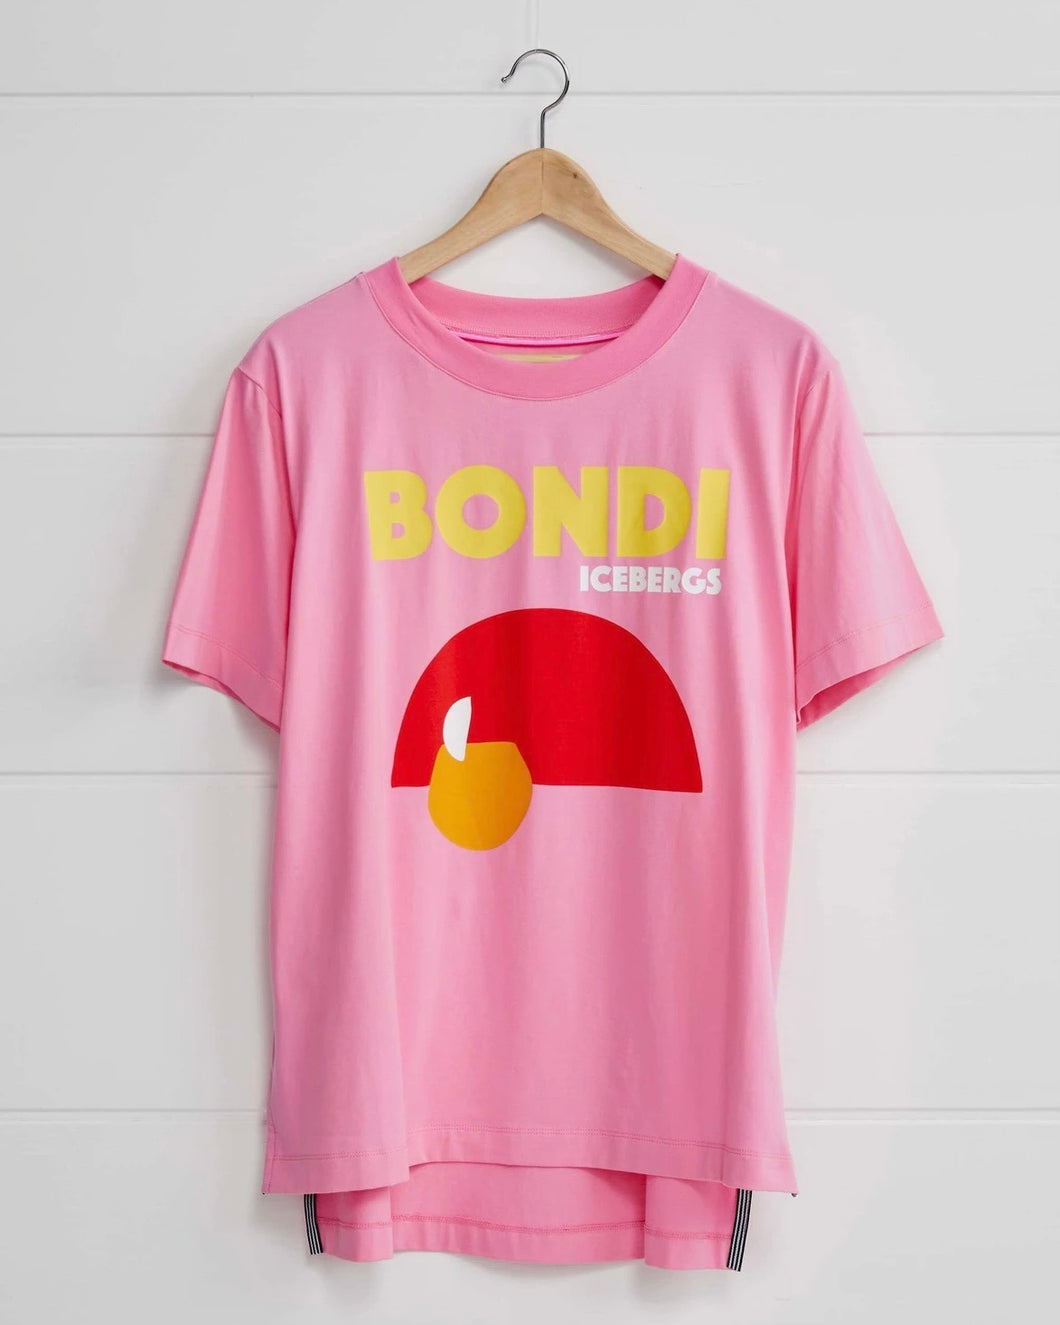 Bondi T-shirt by Binny